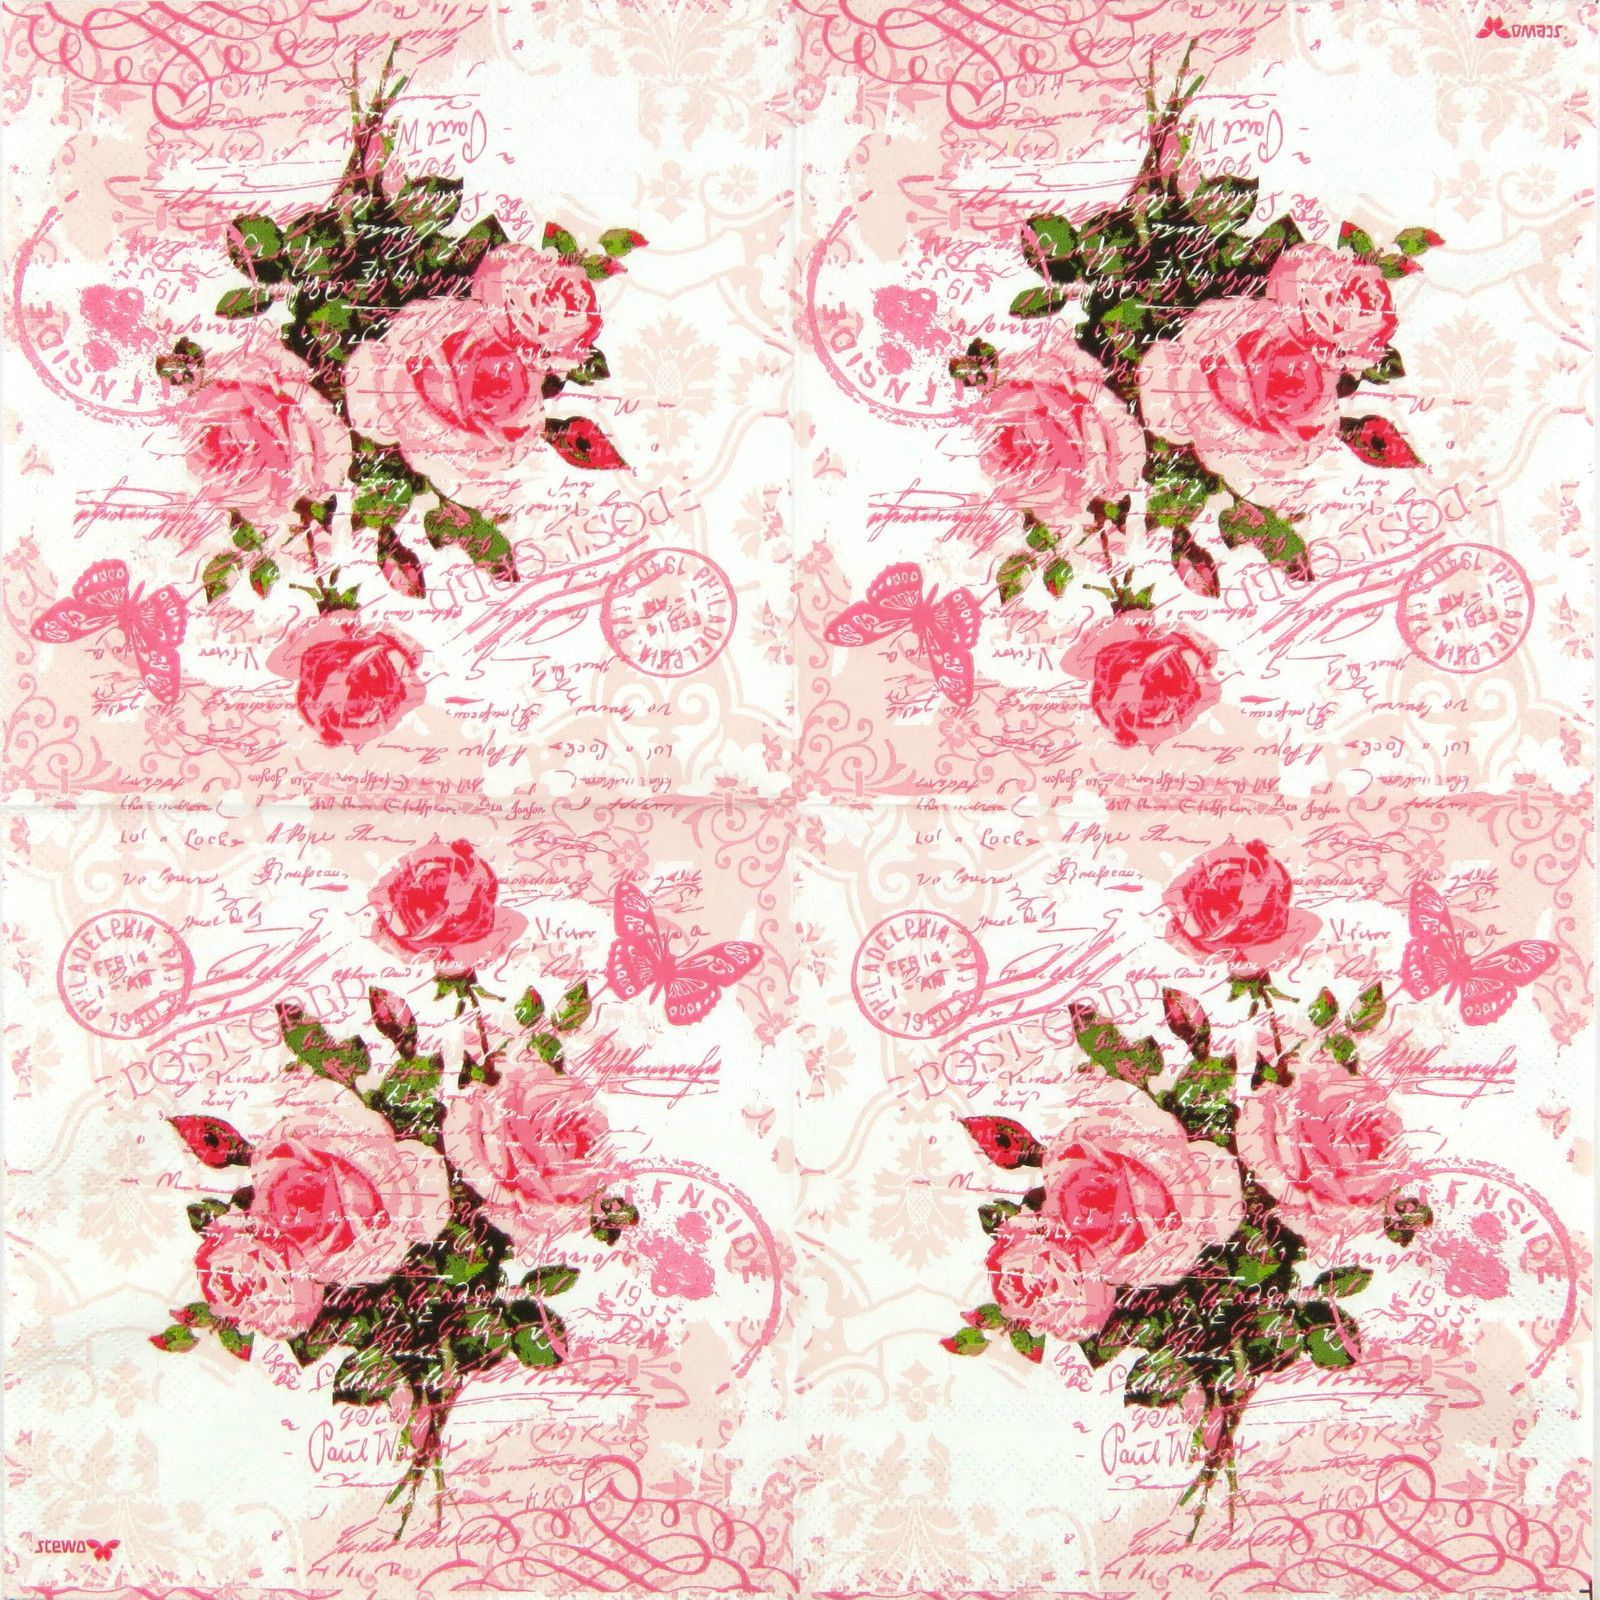 Details About 4x Paper Napkins For Decoupage Vintage Red